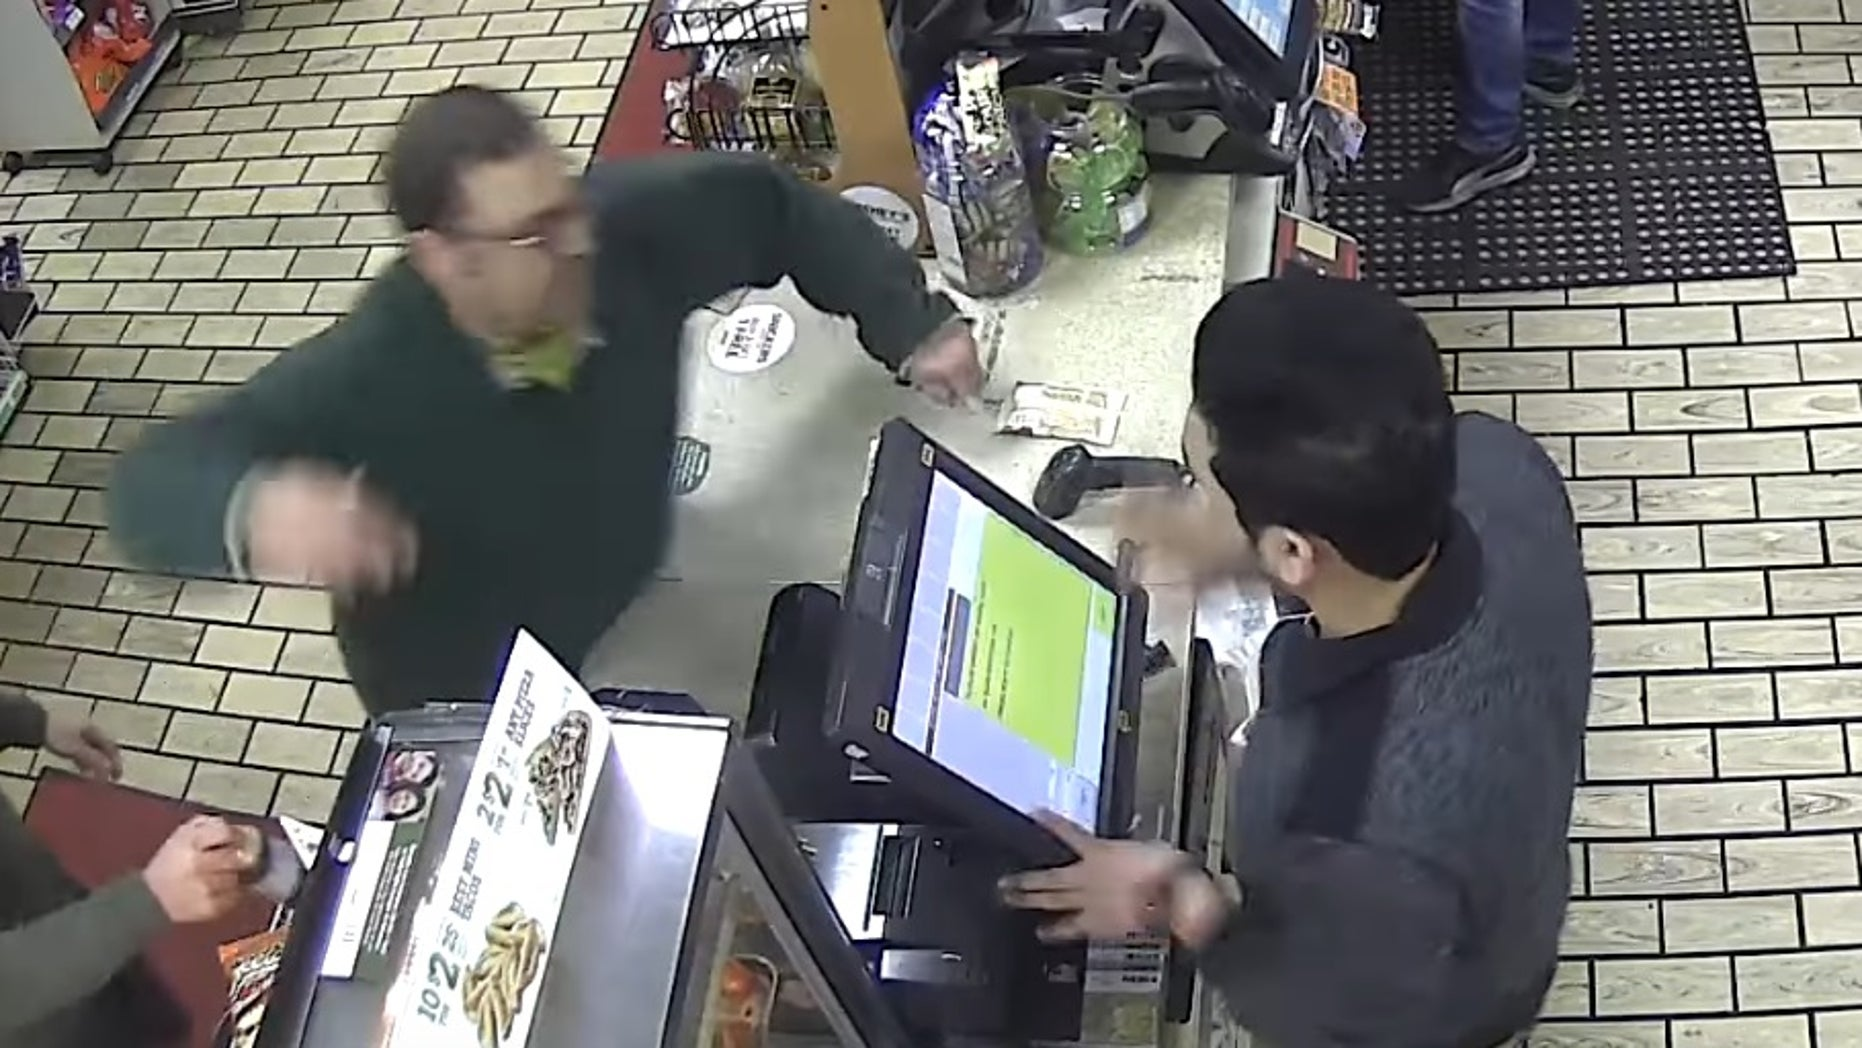 The customer throwing a punch.